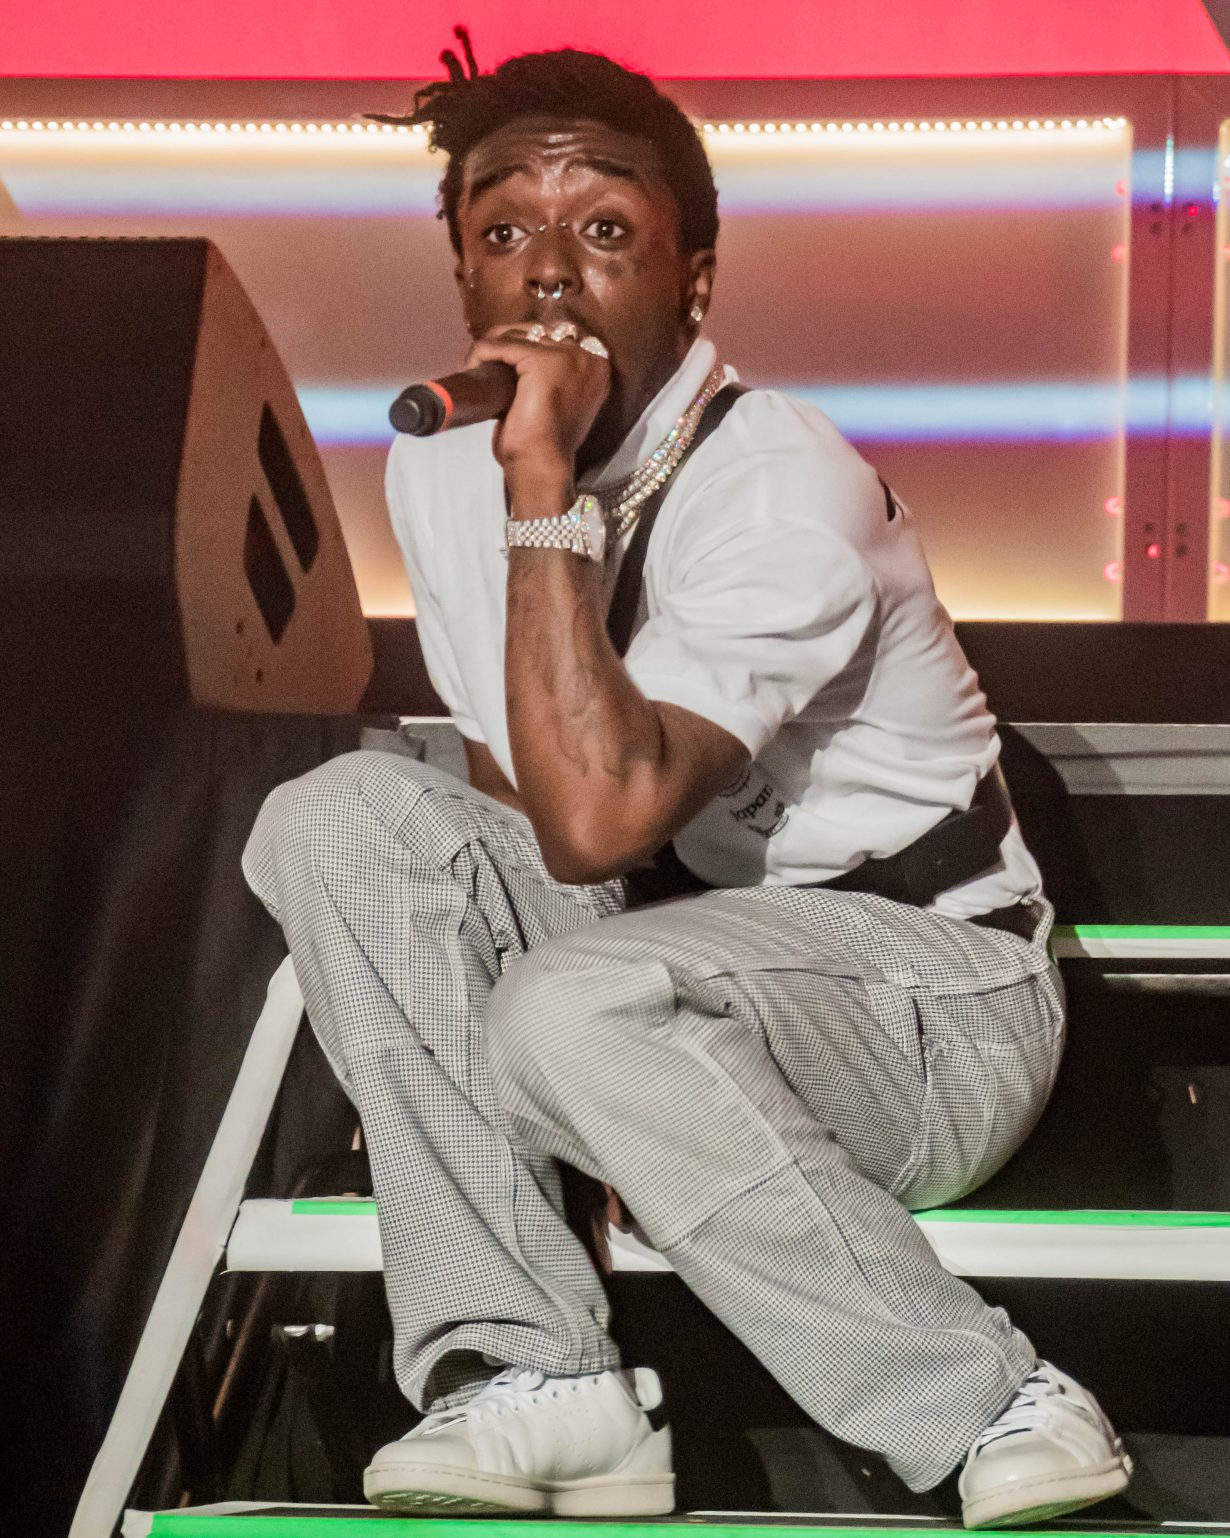 Lil Uzi Vert. RapCaviar Aragon Ballroom 2017 Chicago Il. Photo by Kevin Baker 11 1230x1538 RapCaviar Sets Chicago On Fire with Lil Uzi Vert, Playboi Carti, Cardi B, DJ Drama and More